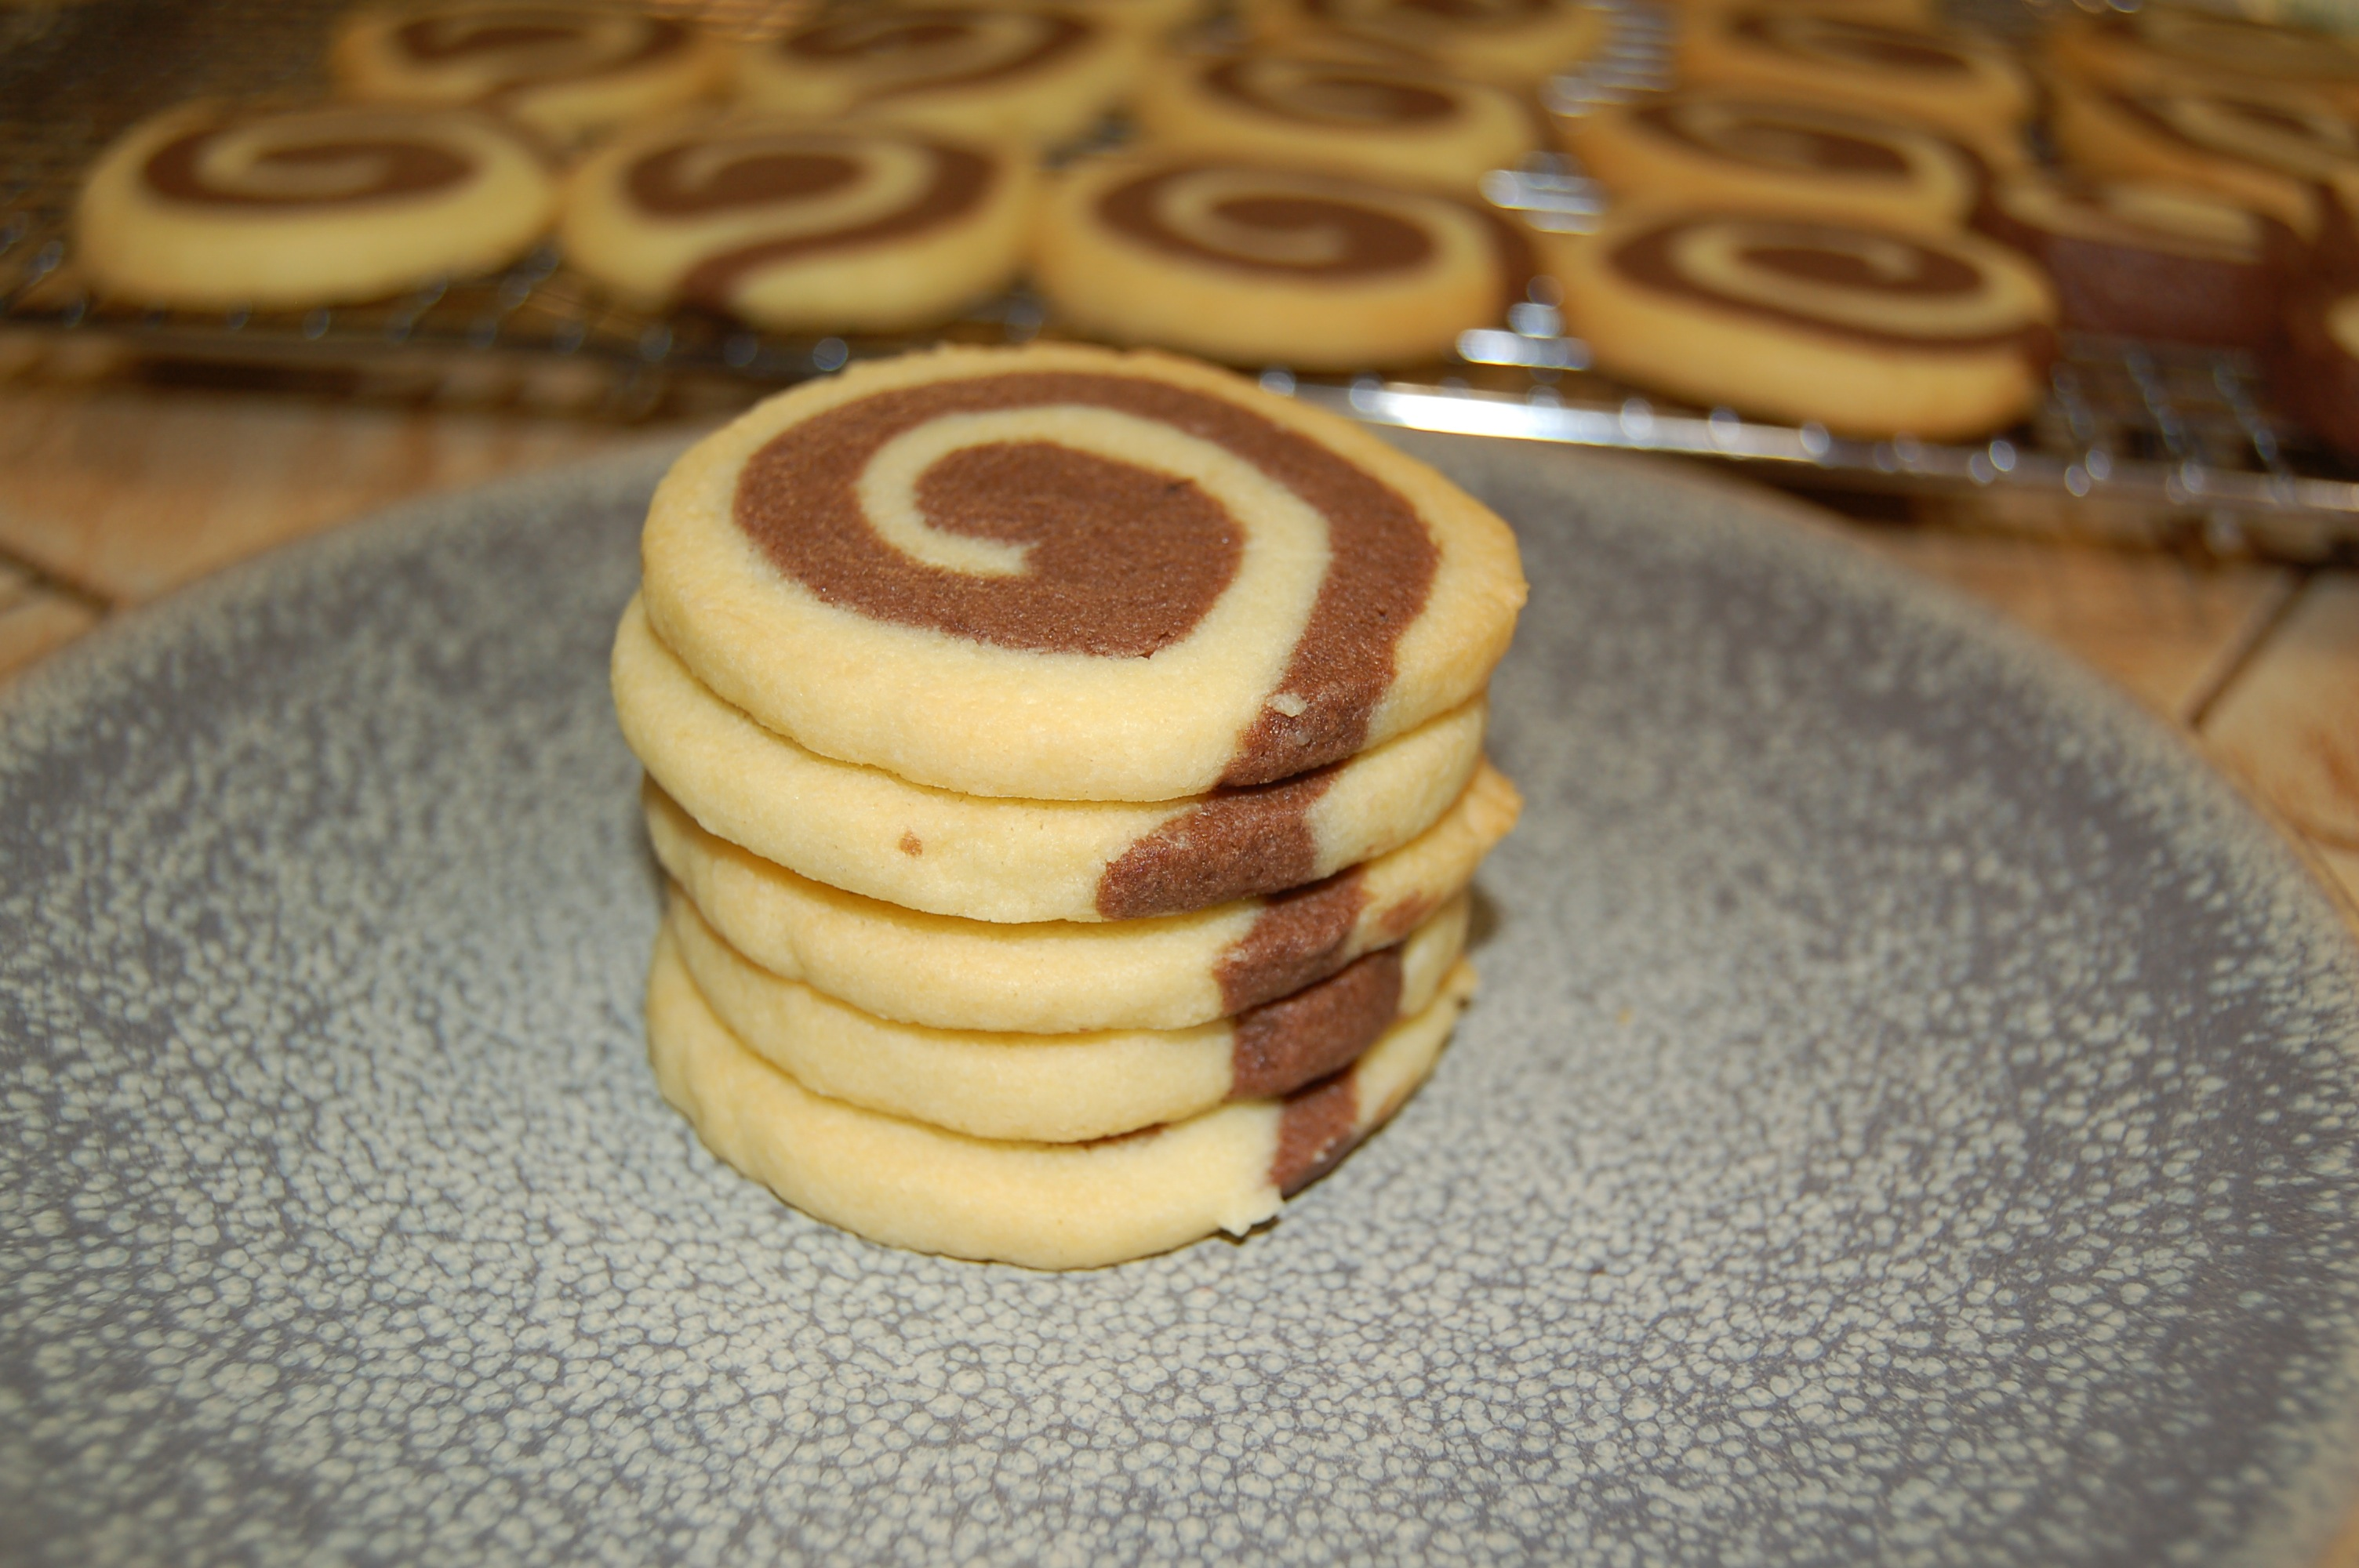 Vanilla Chocolate Swirl Cookies